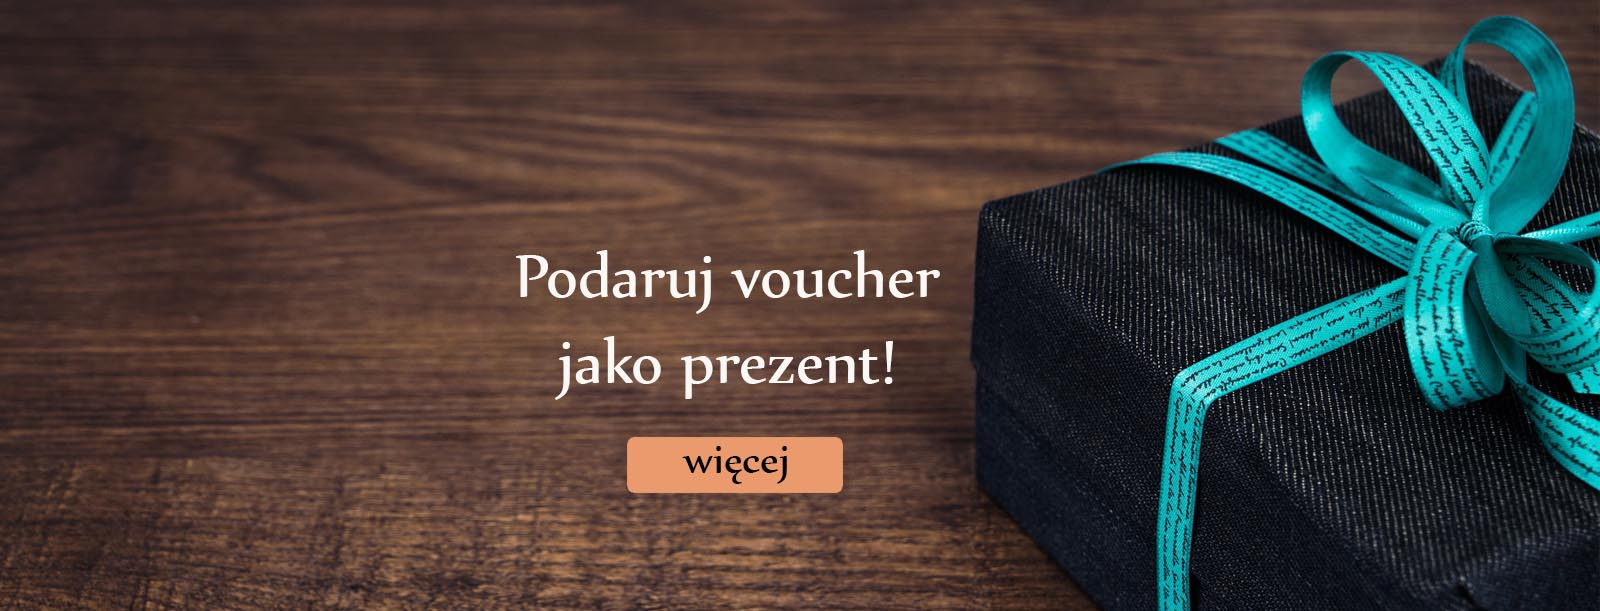 voucher w hotelu rubbens monet